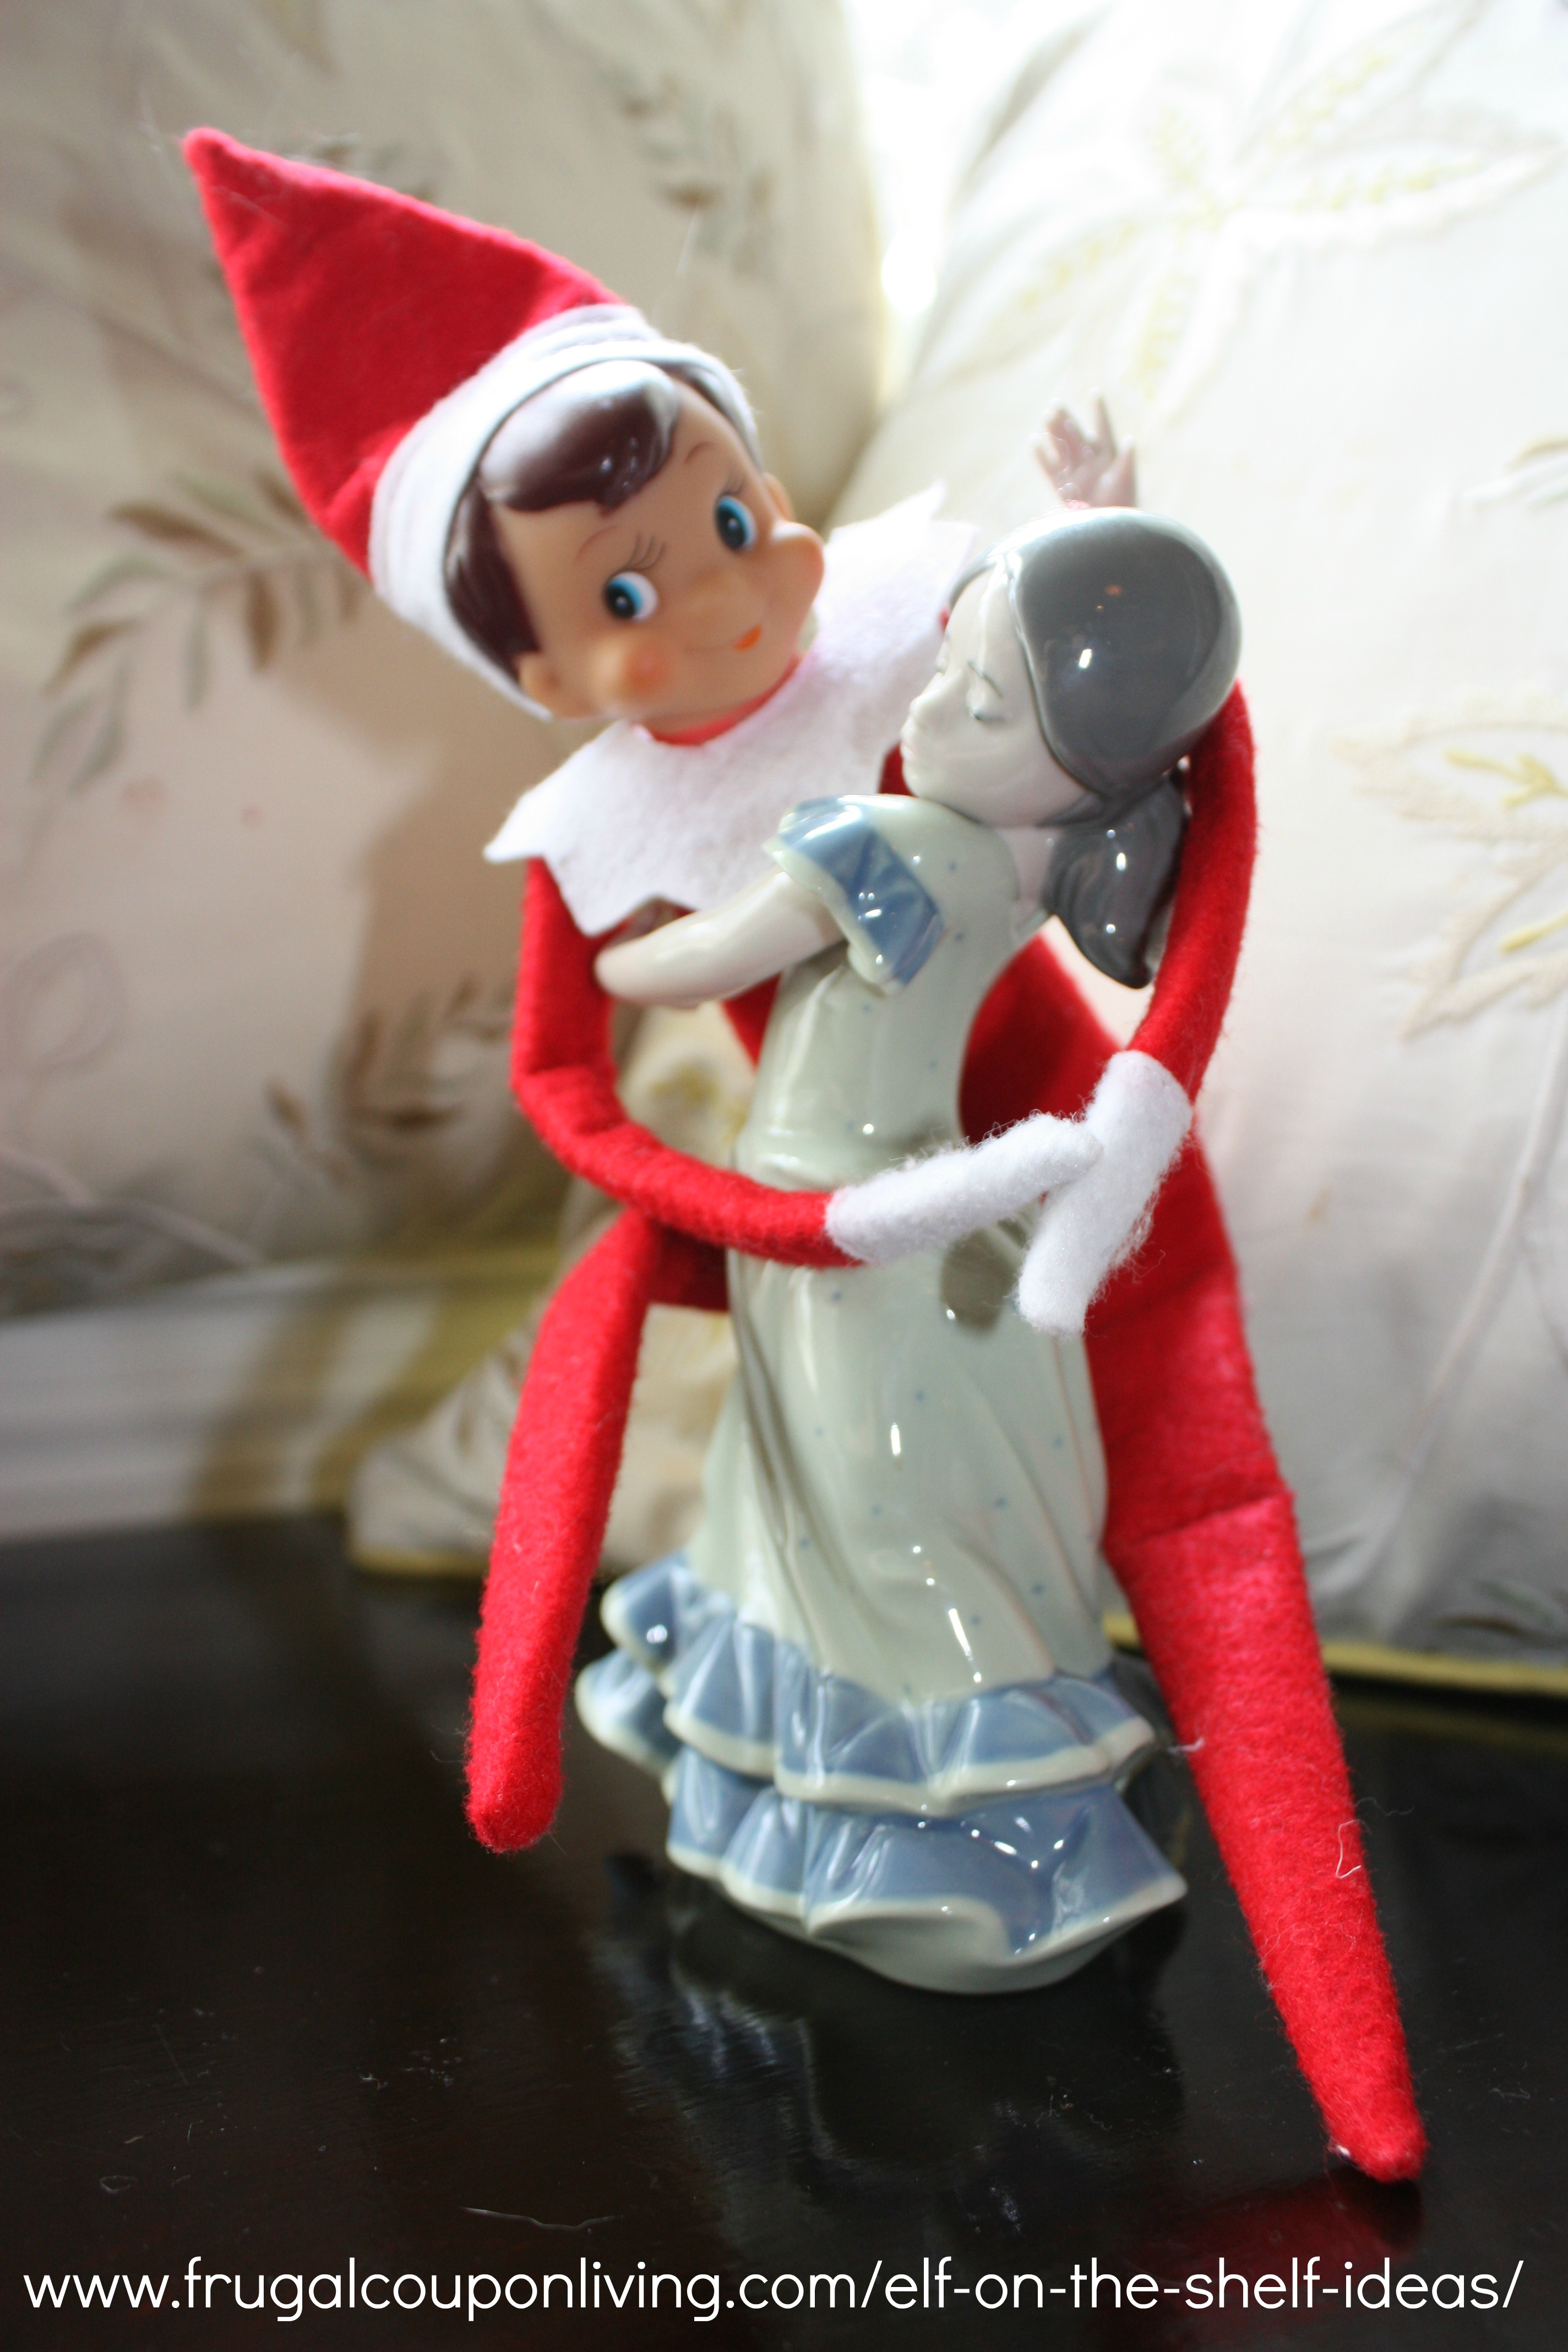 43 Awesome Elf On The Shelf Ideas To Steal This Christmas. Because 24 days is a long time to be clever.